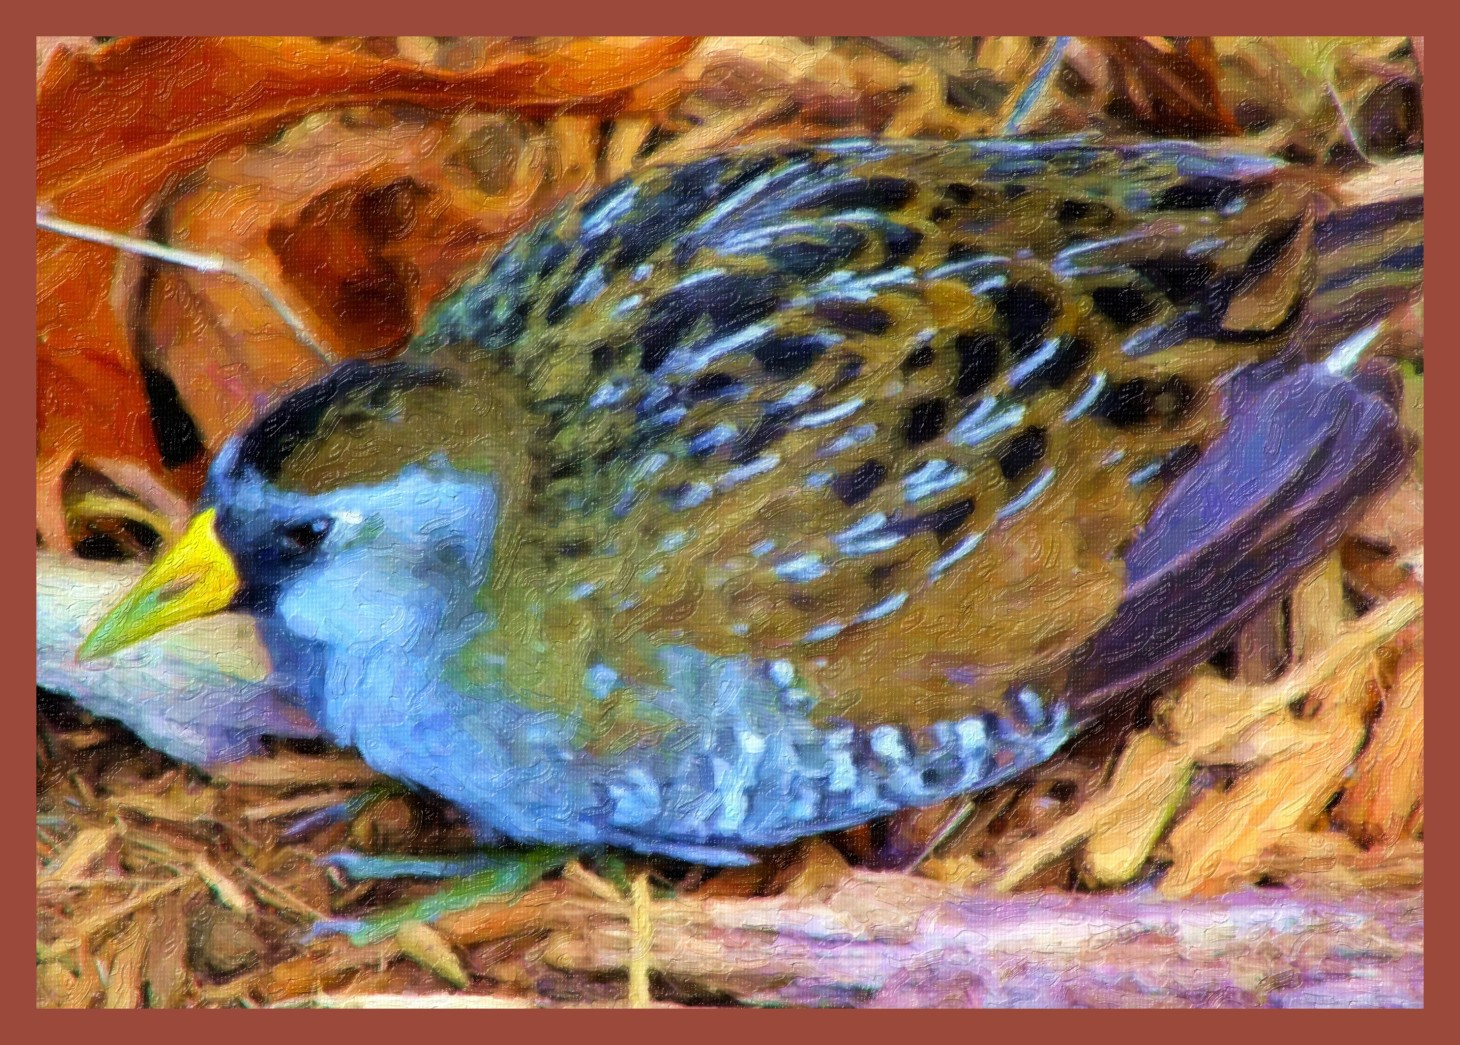 Resting Fledgling. (2) Photo by Thomas Peace c. 2015